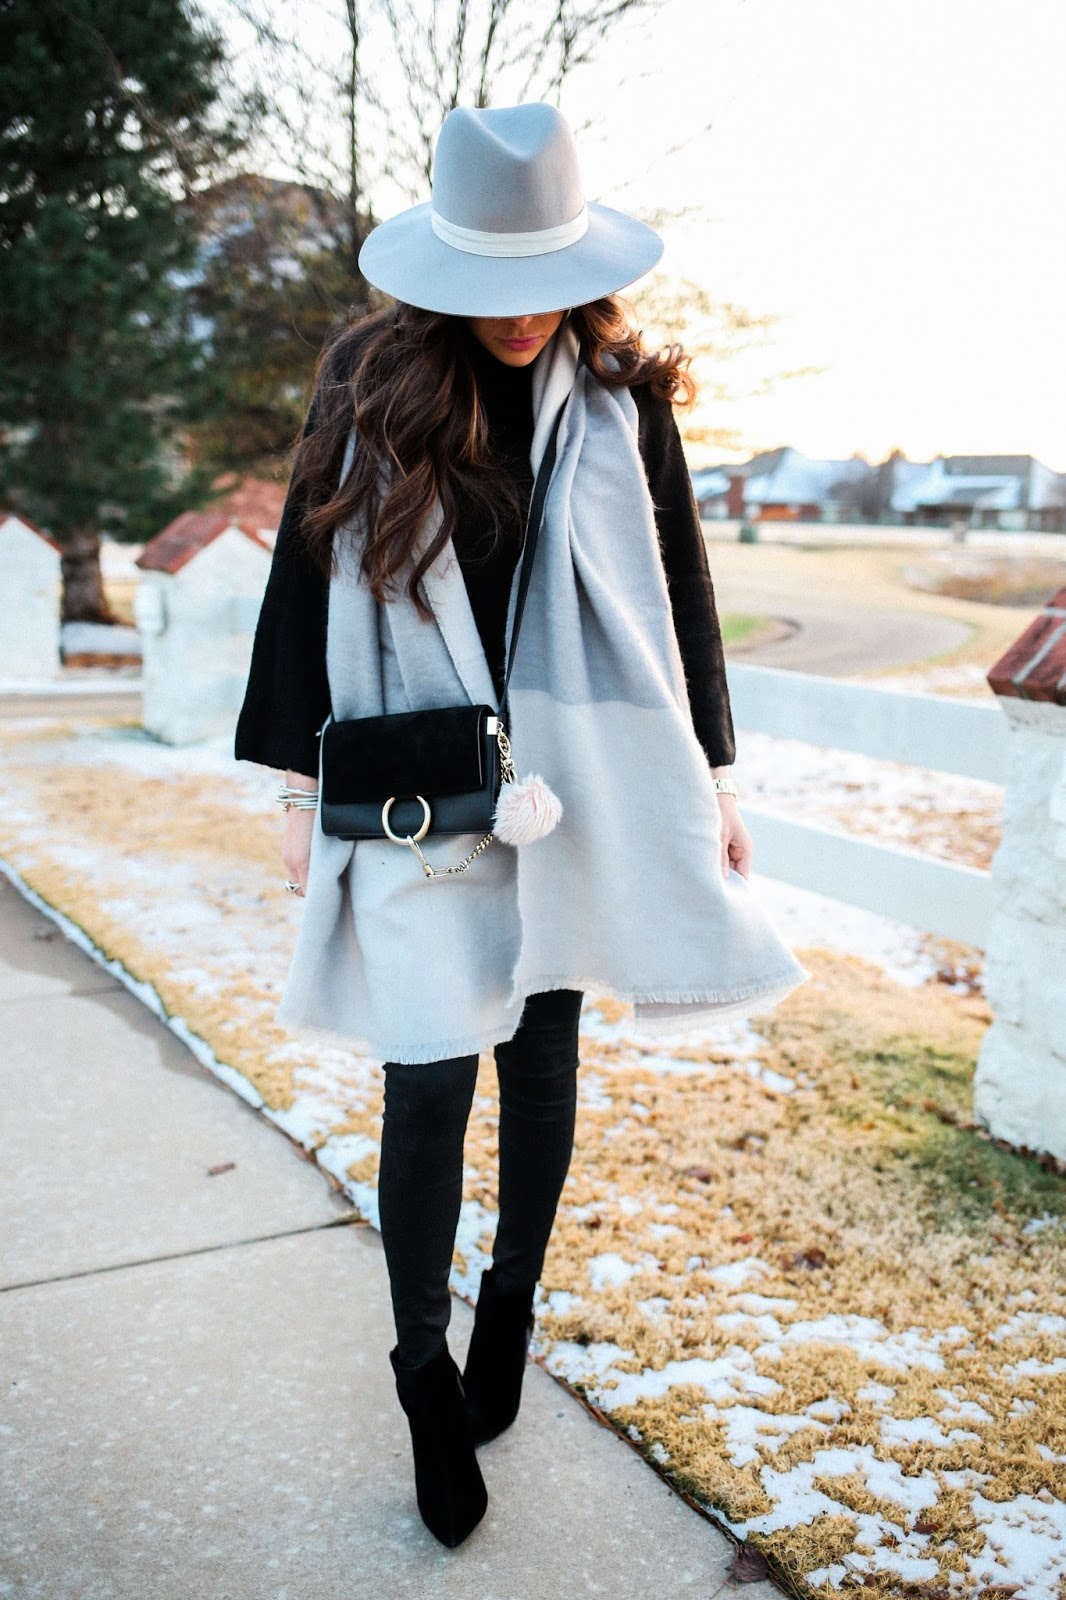 winter_fashion_winter_outfit_idea_pinterest_new_years_eve_outfit_idea_with_sequins_how_to_style_sequin_dress_for_nye_emily_gemma_snow_fashion_outfit_idea-4.jpg